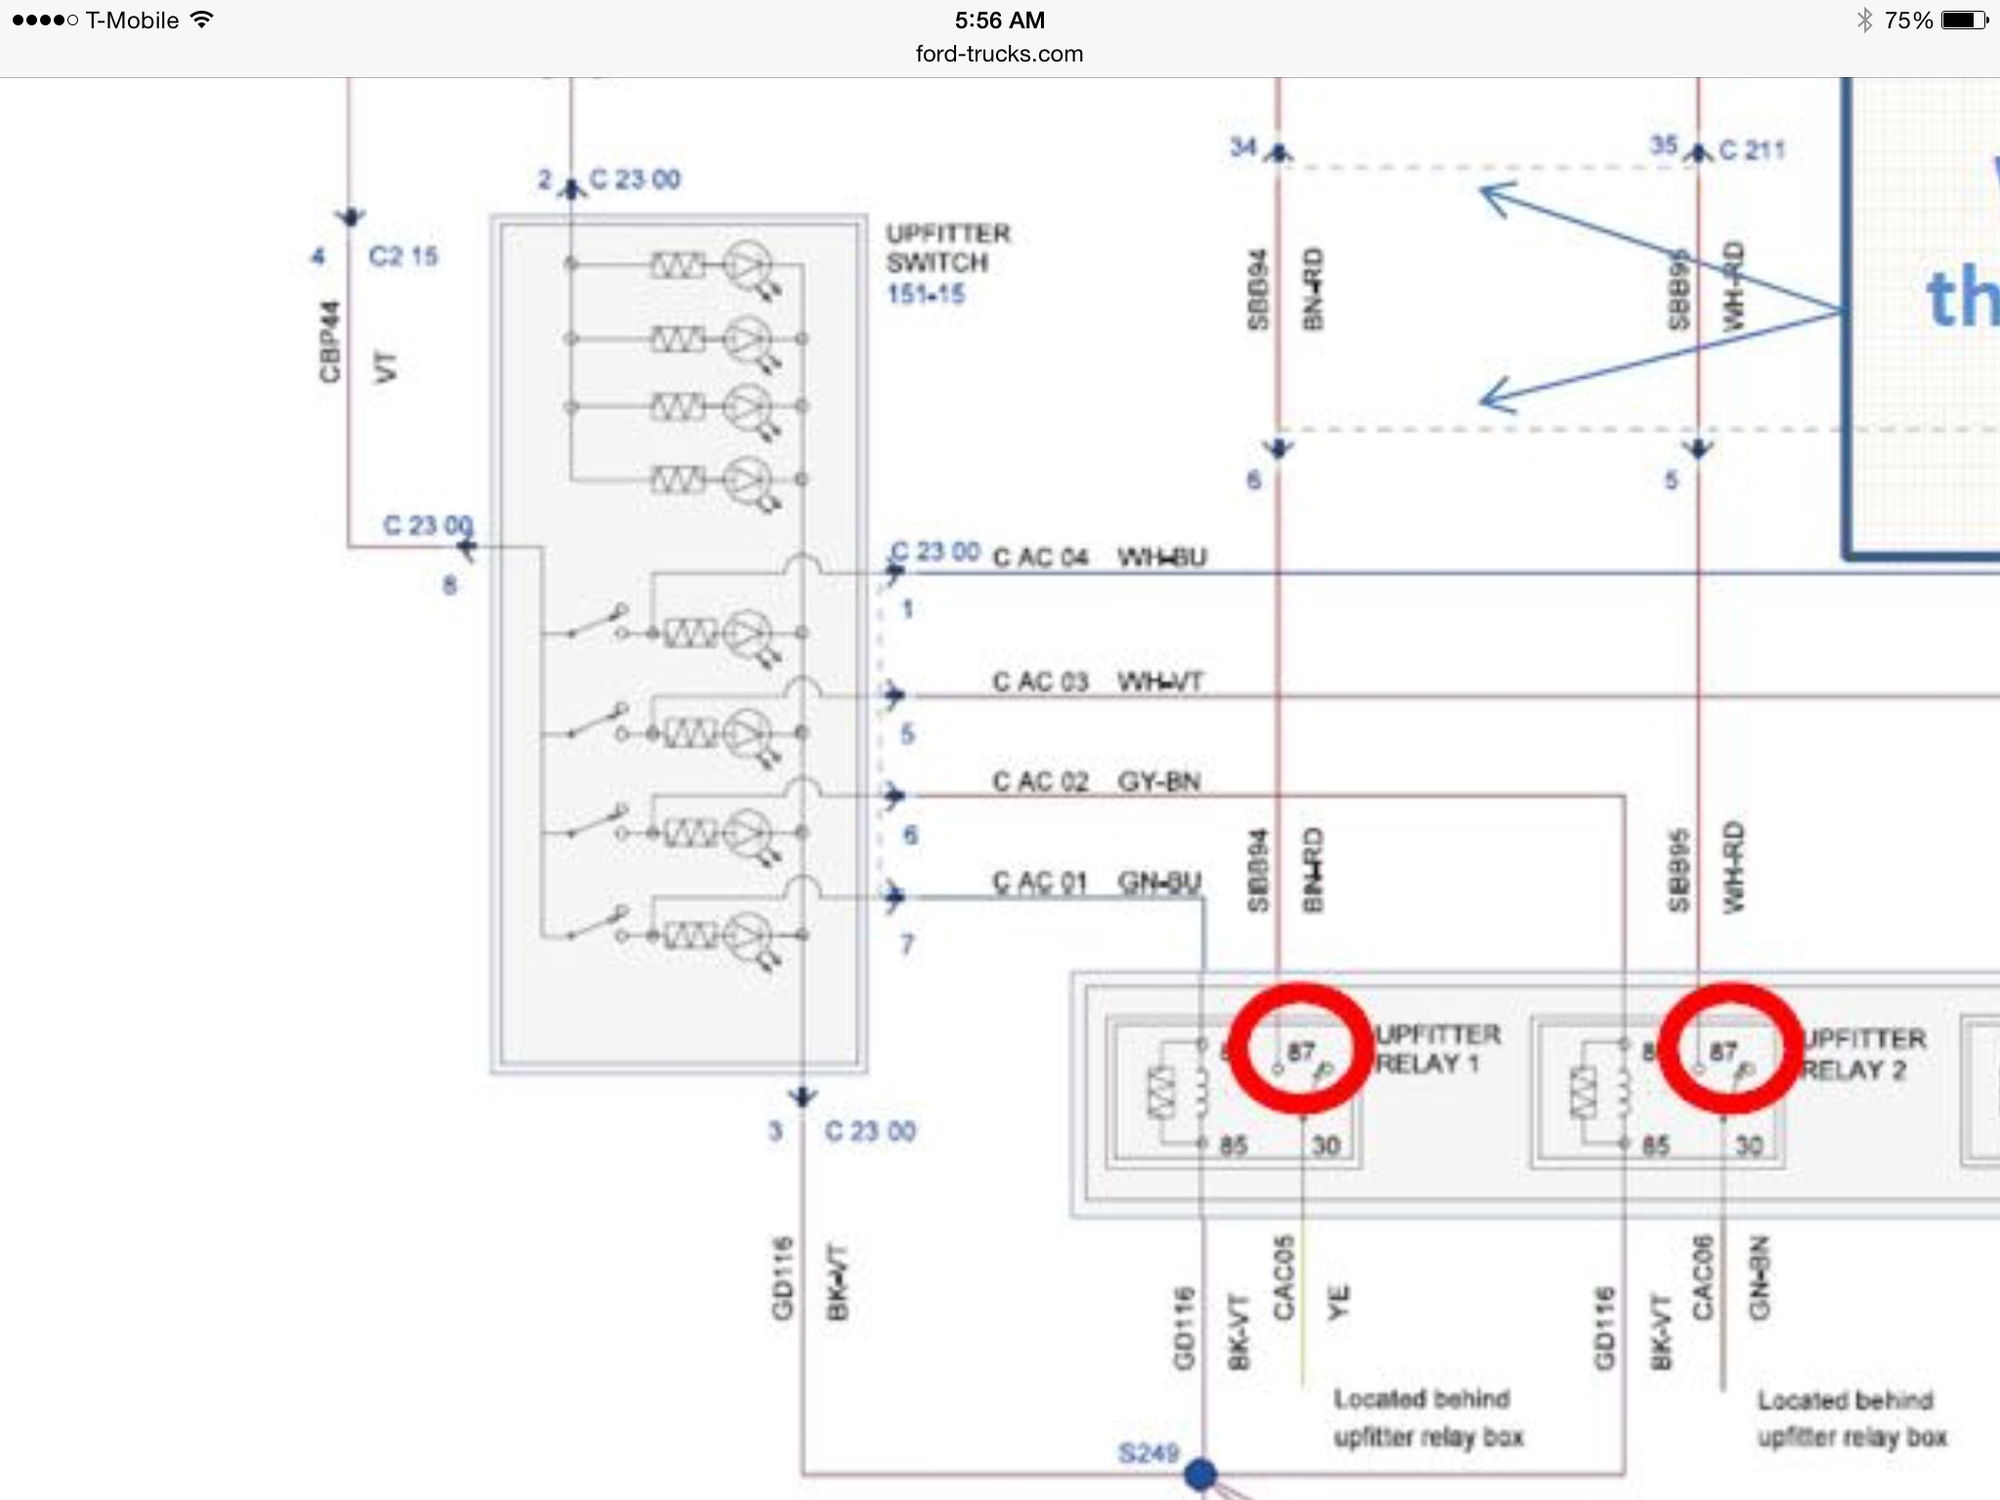 80 image_612d2faaf509226348e36137640bfa77eb9c524f 2015 upfitter wiring diagram help f250 ford truck enthusiasts forums ford raptor aux switch wiring diagram at bayanpartner.co